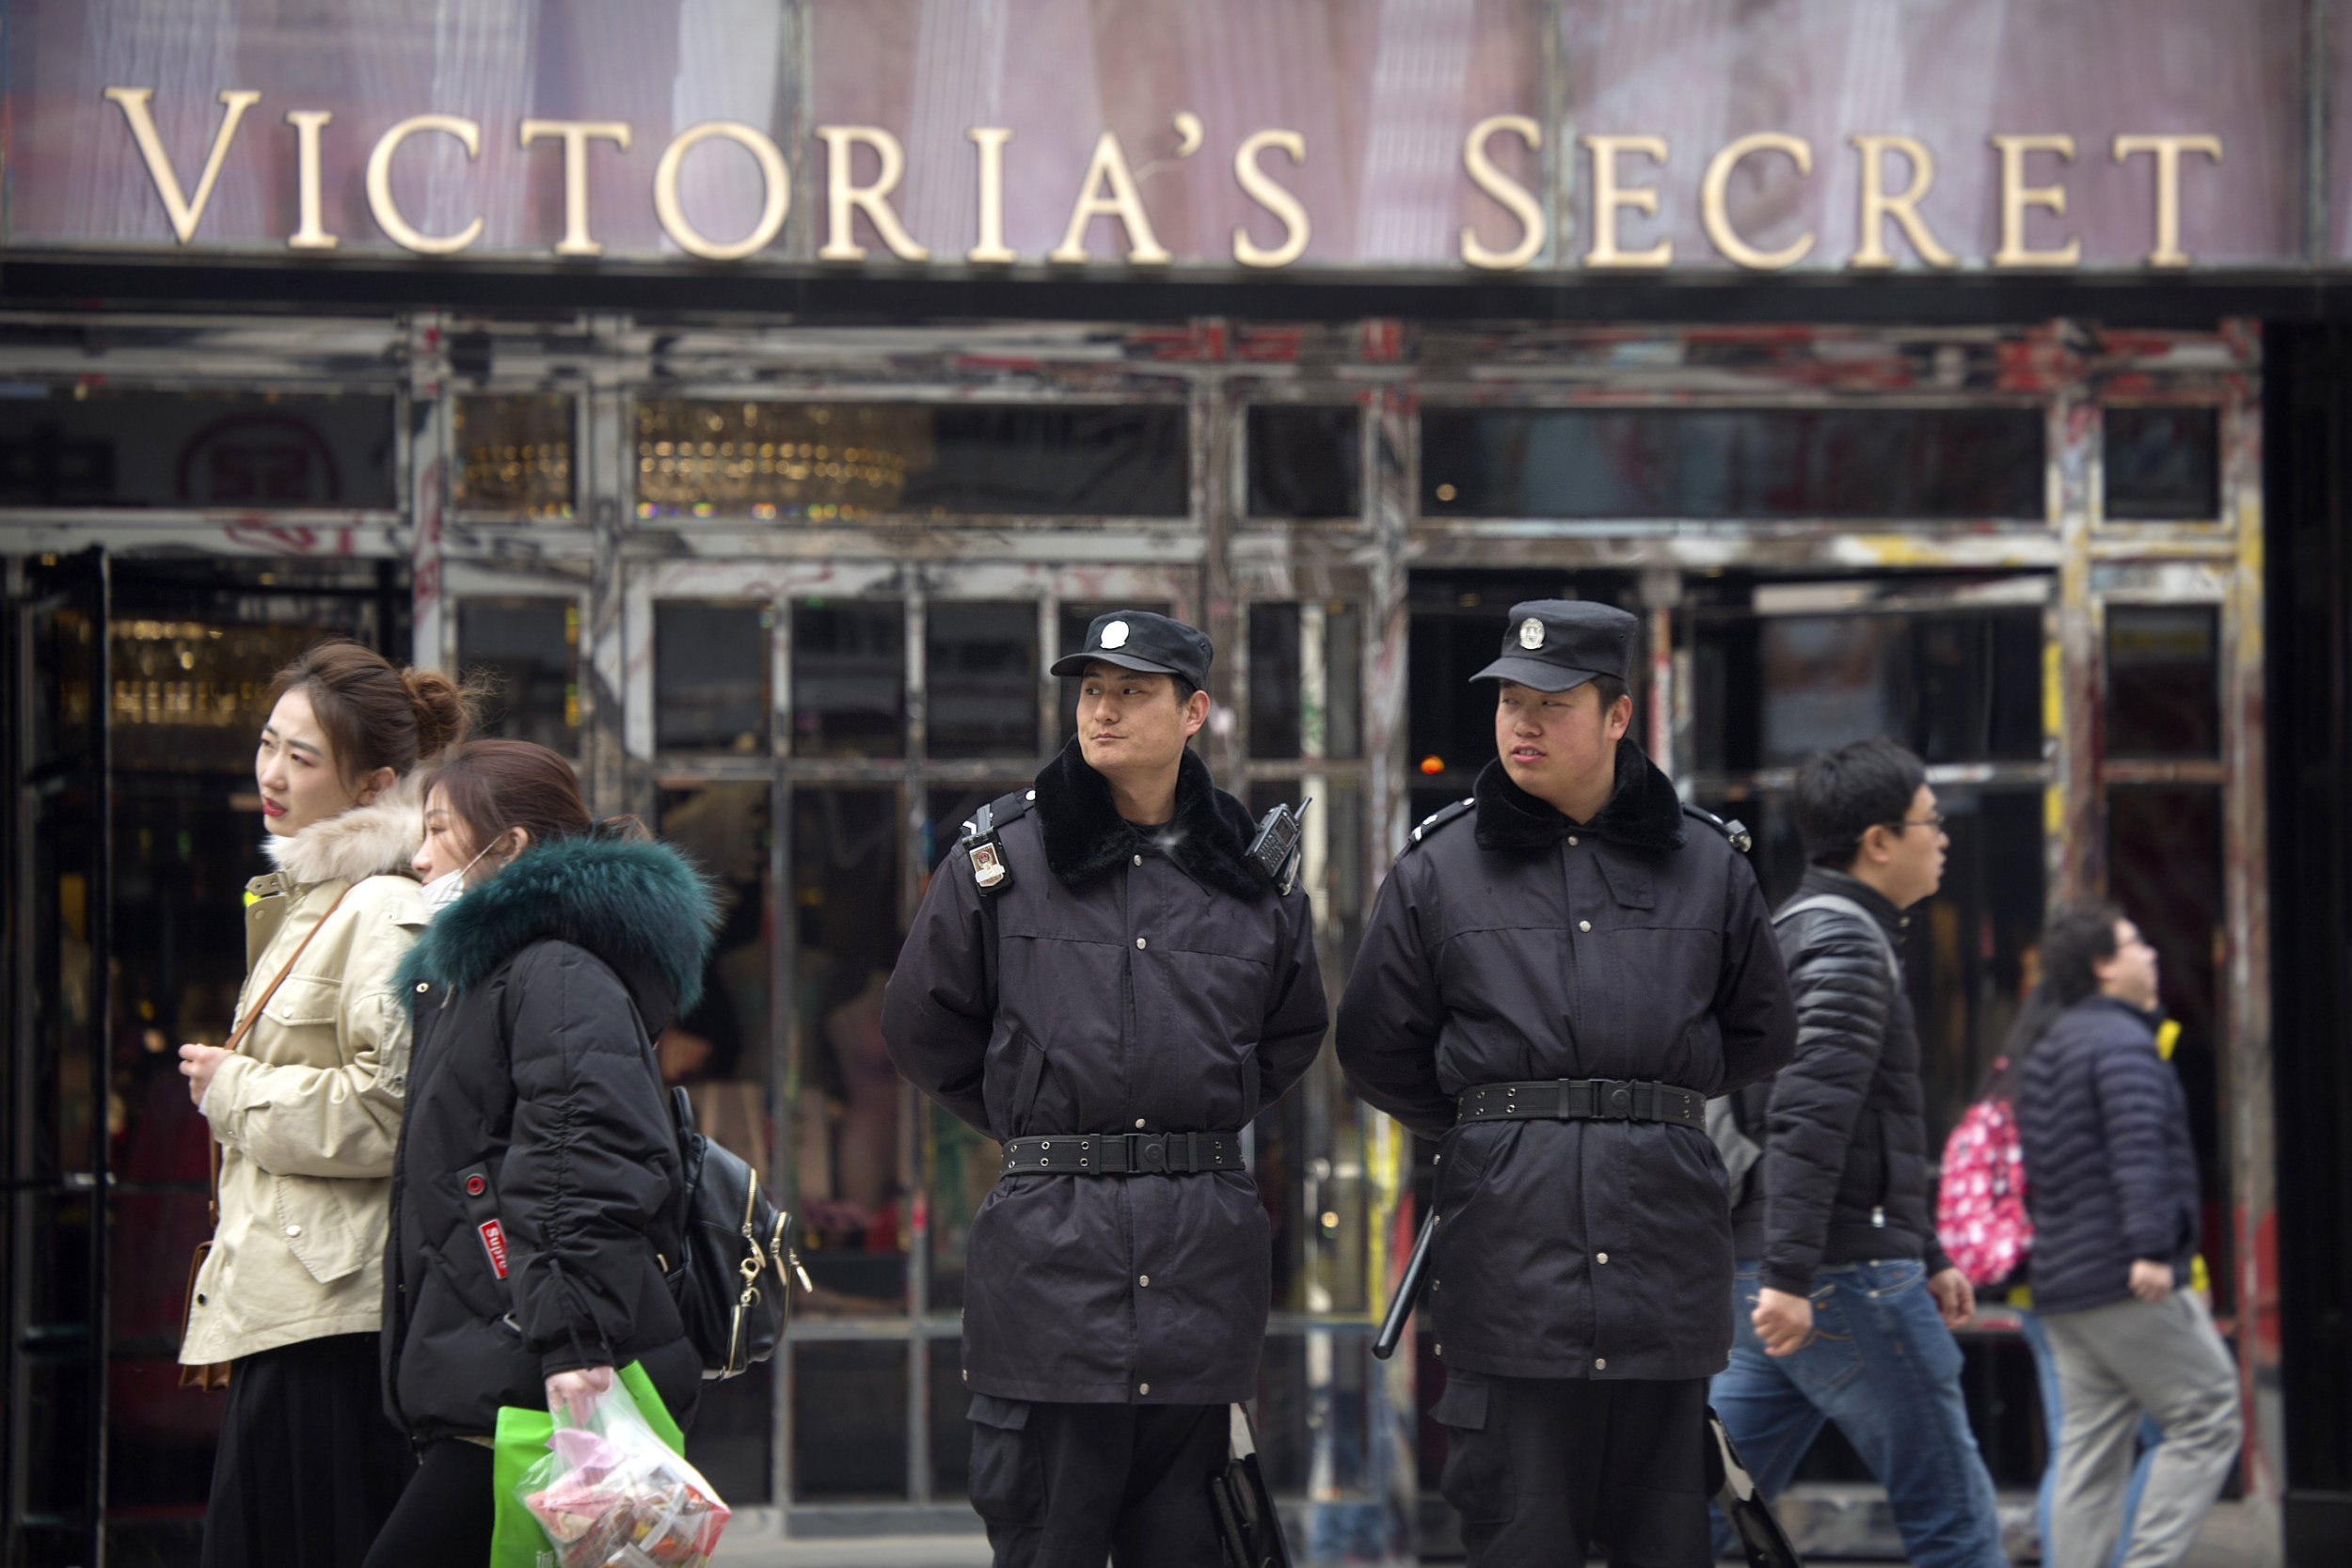 Victoria's Secret to close 53 stores as women leave the celebrity model brand